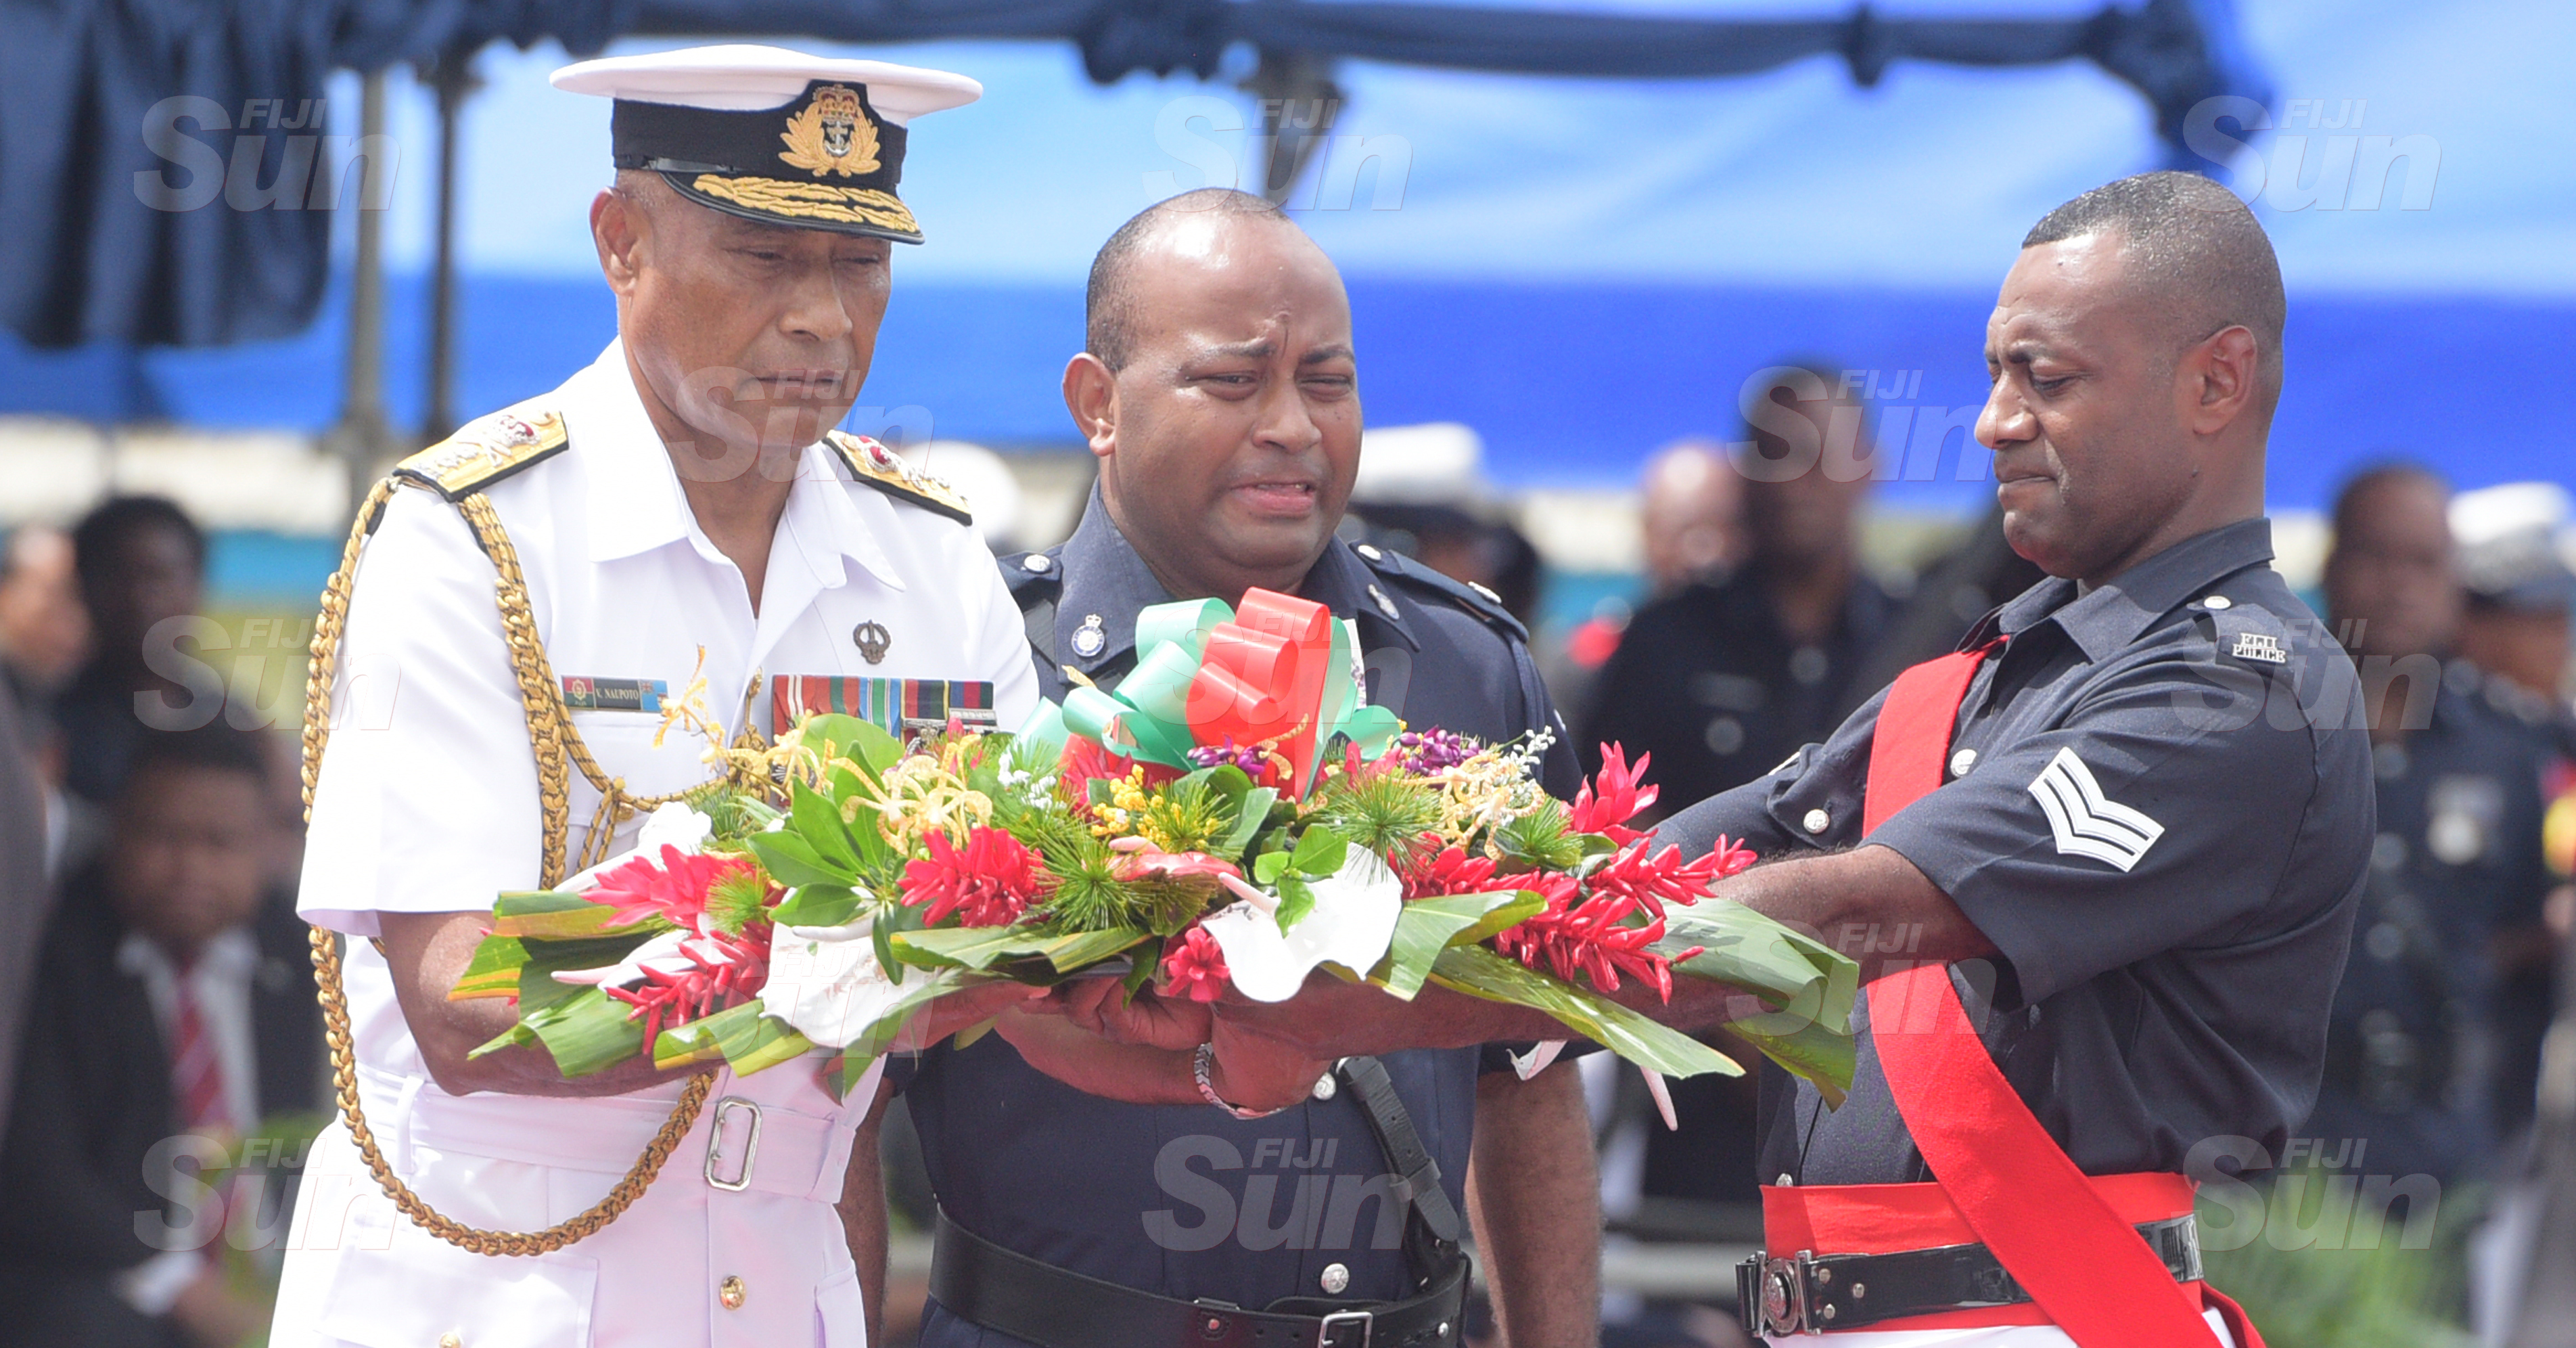 RFMF Commander, Rear Admiral Viliame Naupoto (left)  during wreath laying ceremony for Police Remembrance Day at Police Special Response Unit on September 29, 2020. Photo: Ronald Kumar.